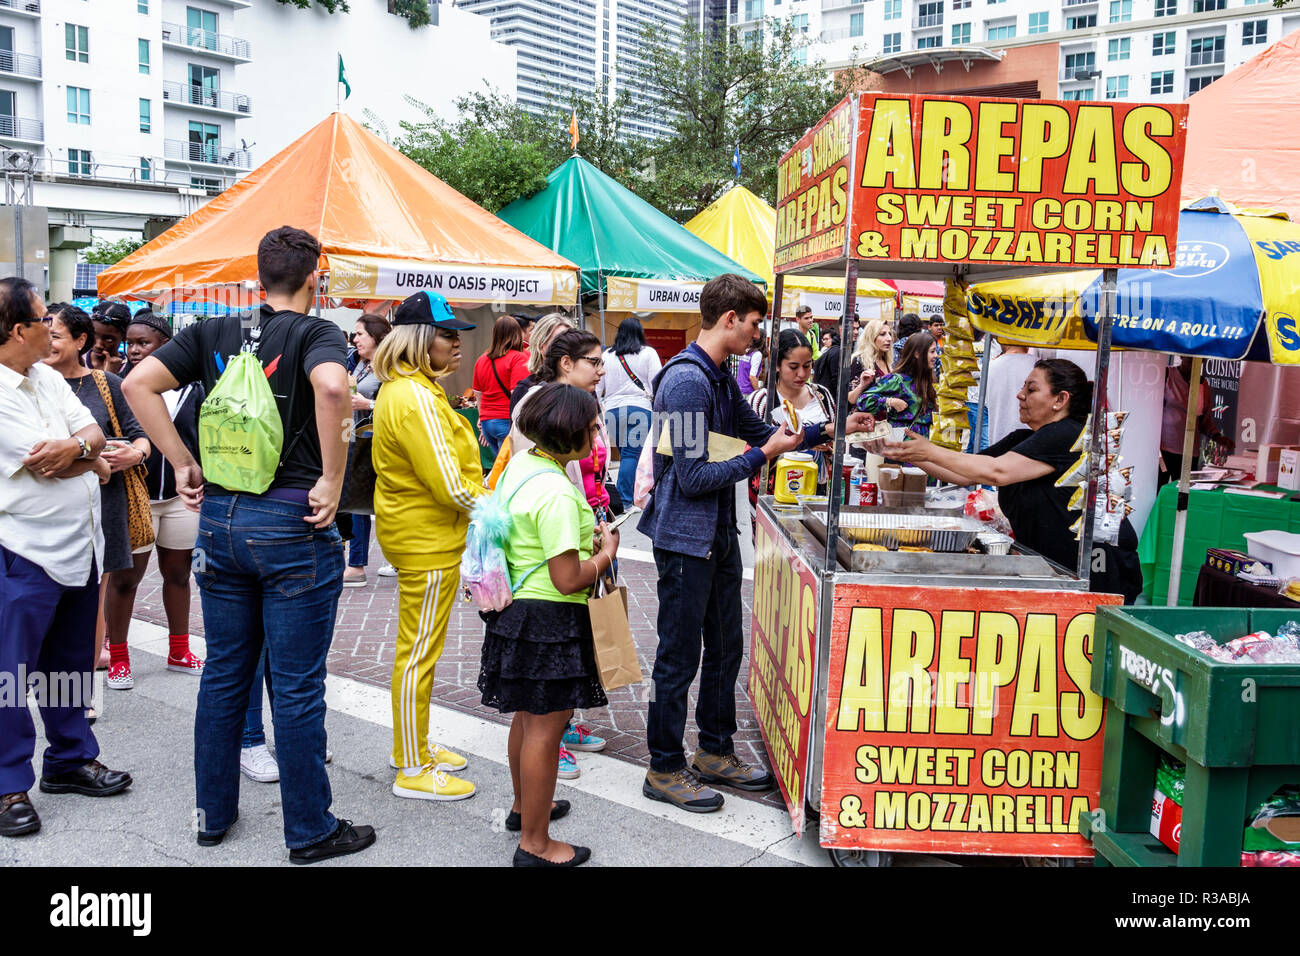 Miami Miami Florida-Dade College Book Fair annual event booths stalls vendors booksellers books sale shopping food vendor arepas sweet corn customers - Stock Image